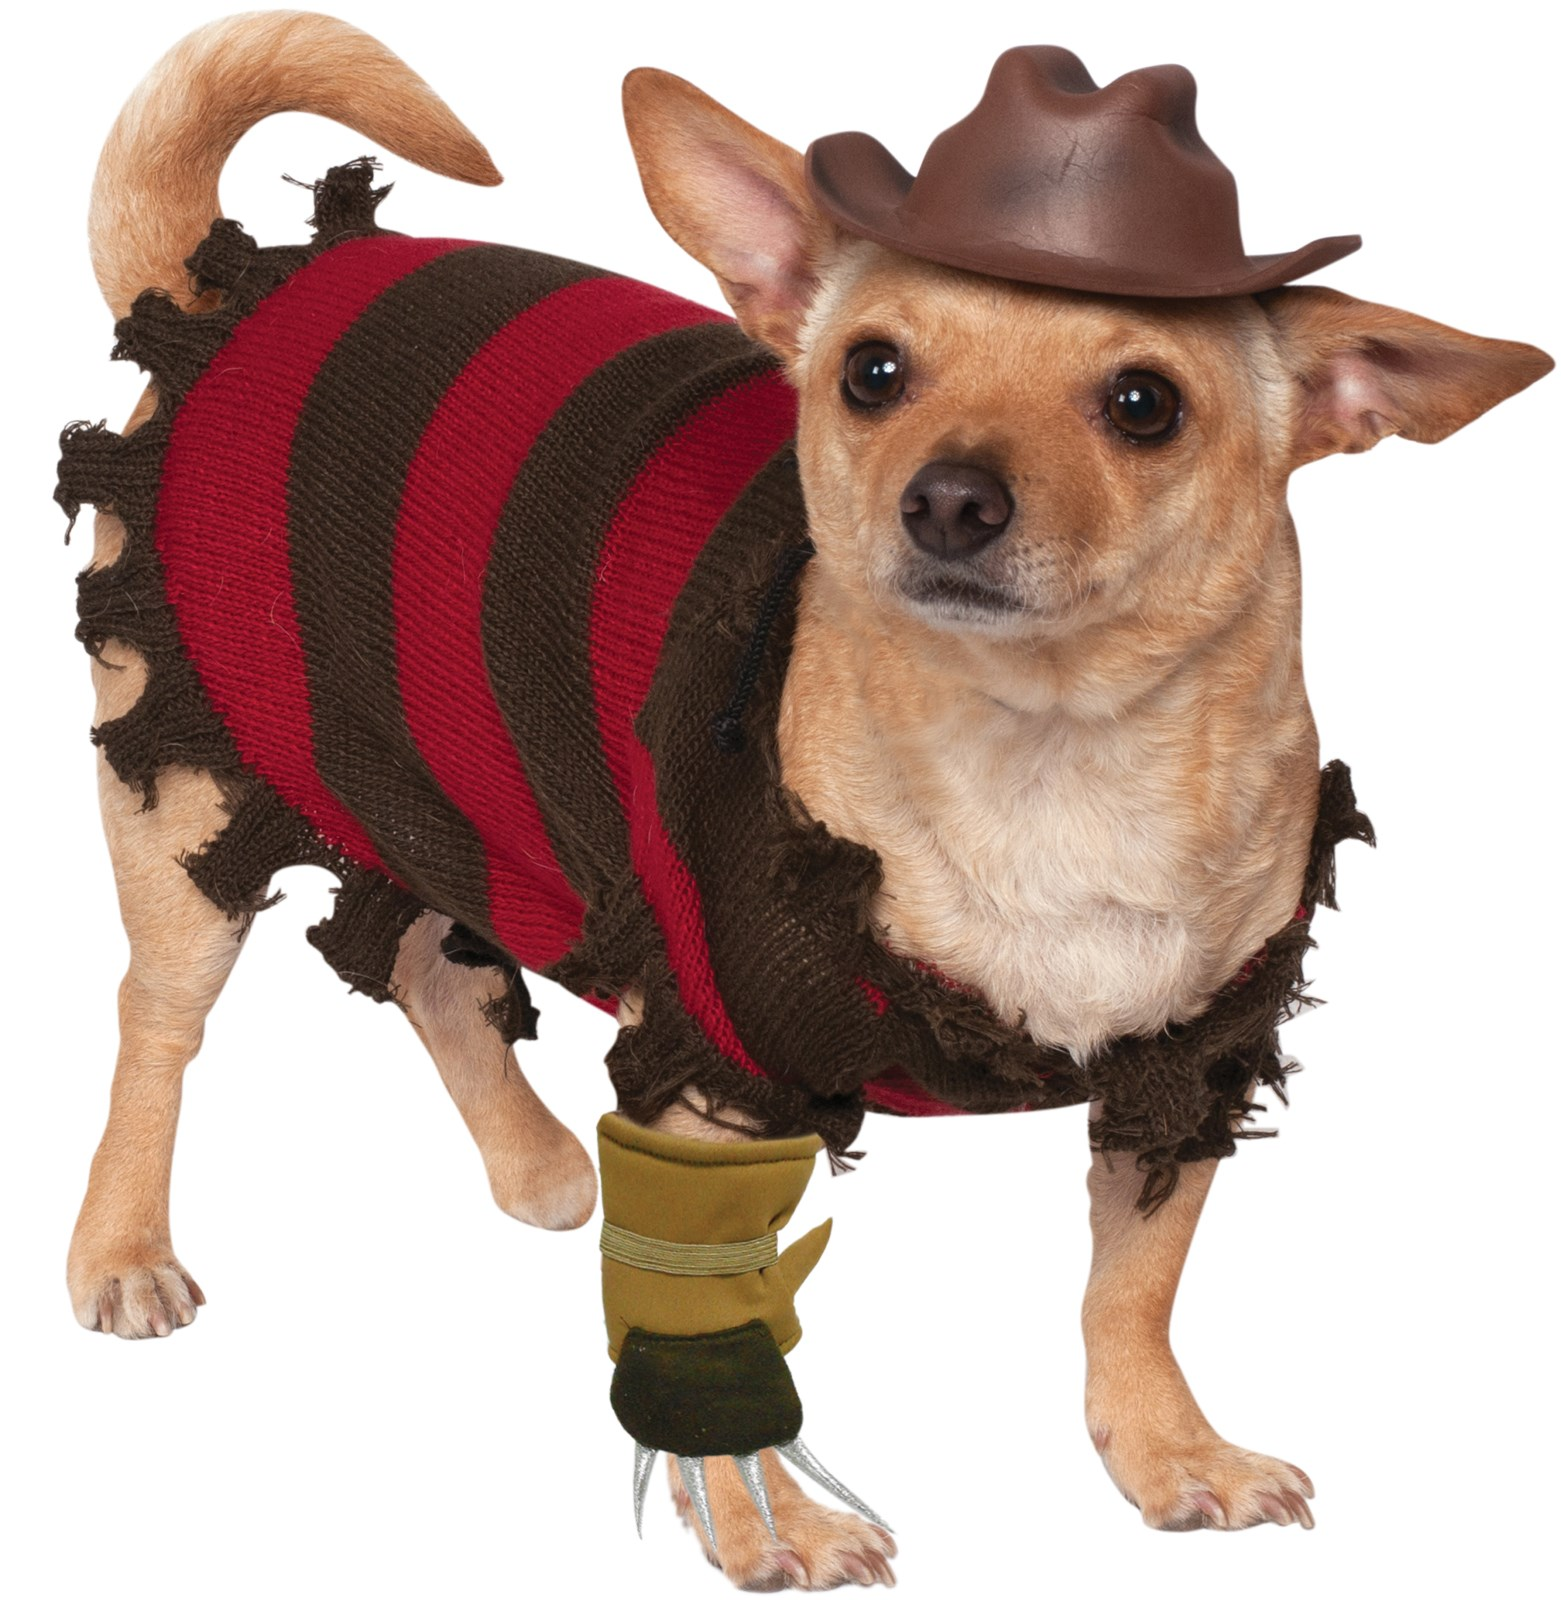 pet freddy kreuger costume - Freddy Krueger Halloween Decorations